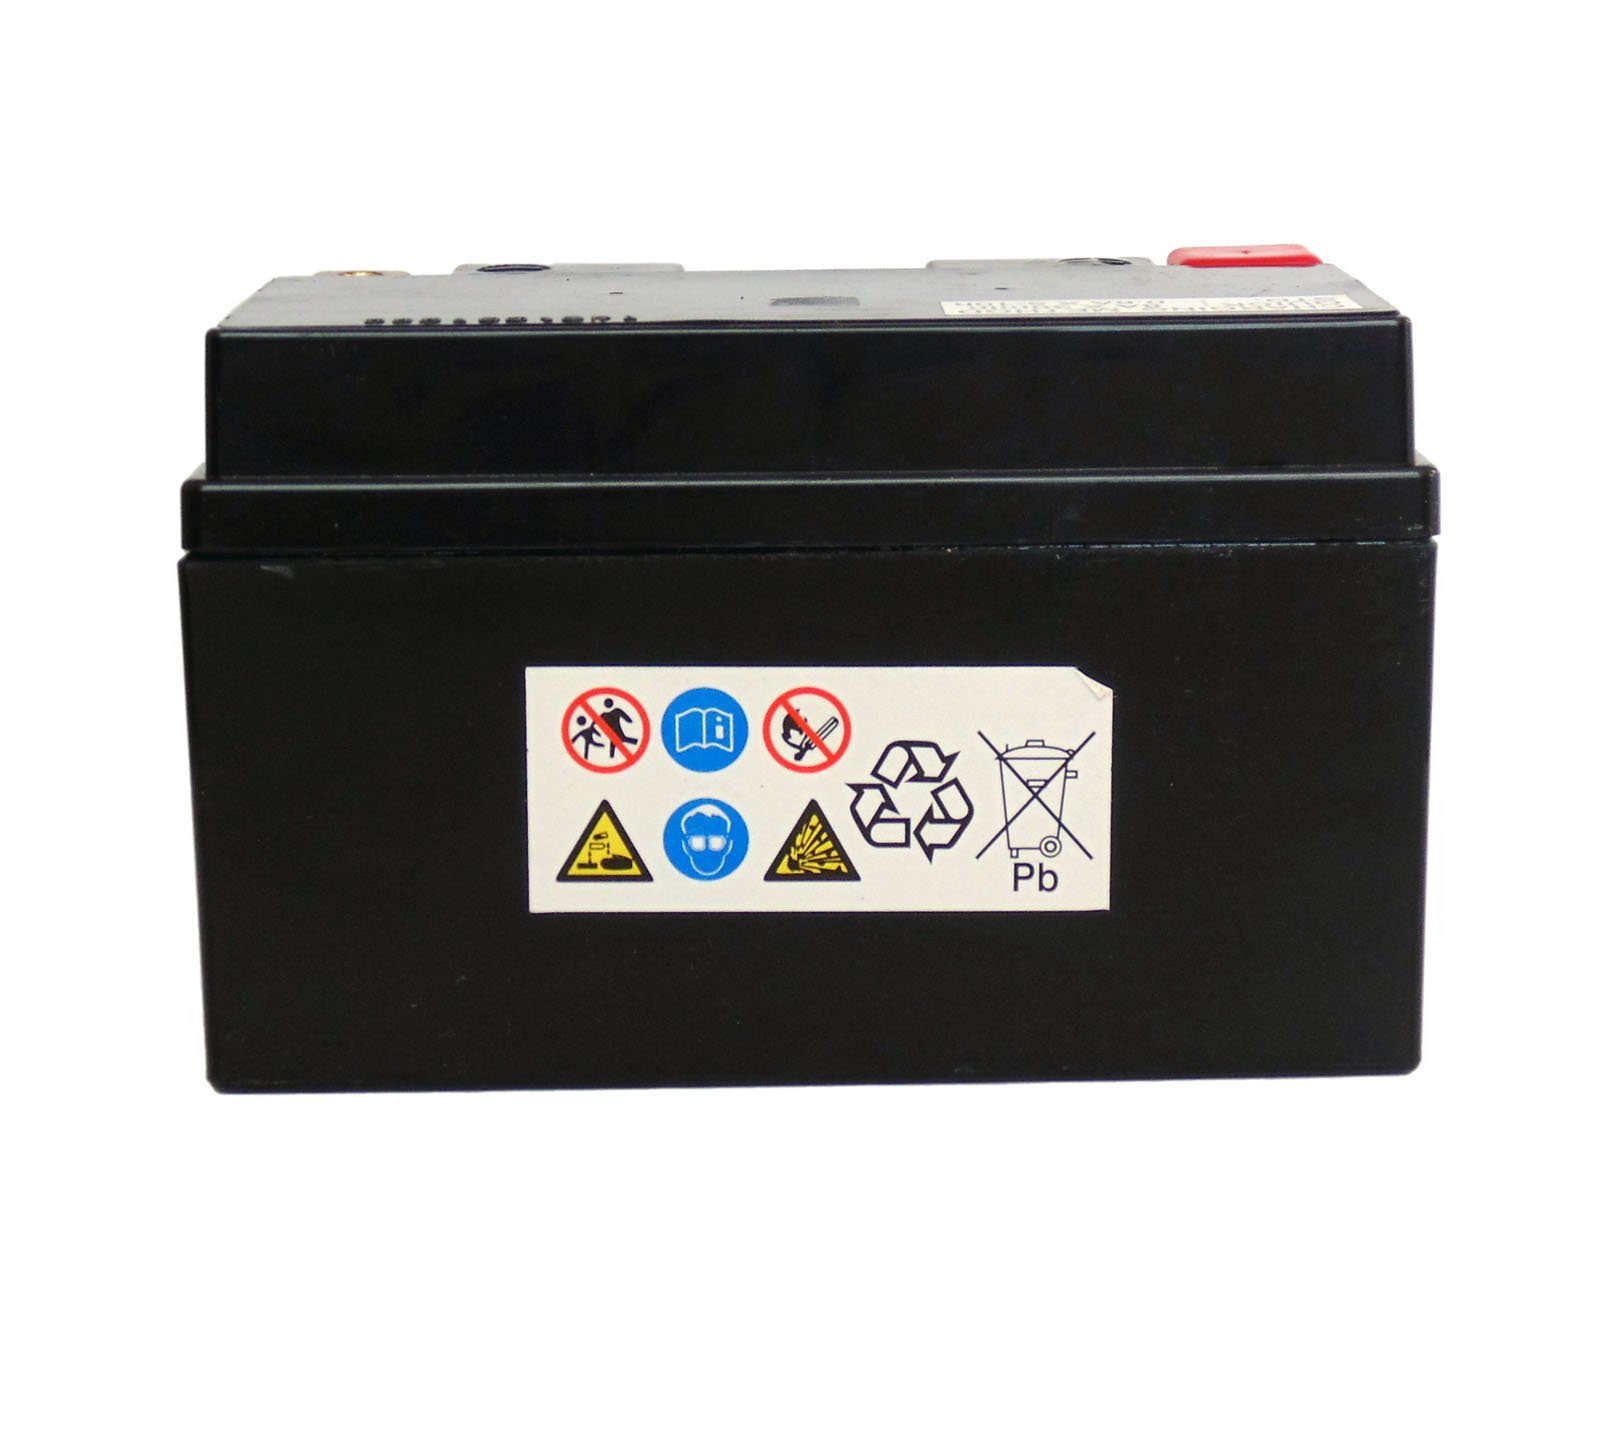 MMG YTZ14S Gel Cell 12v Powersports Battery for Motorcycles Scooters ATV UTV by MMG (Image #5)